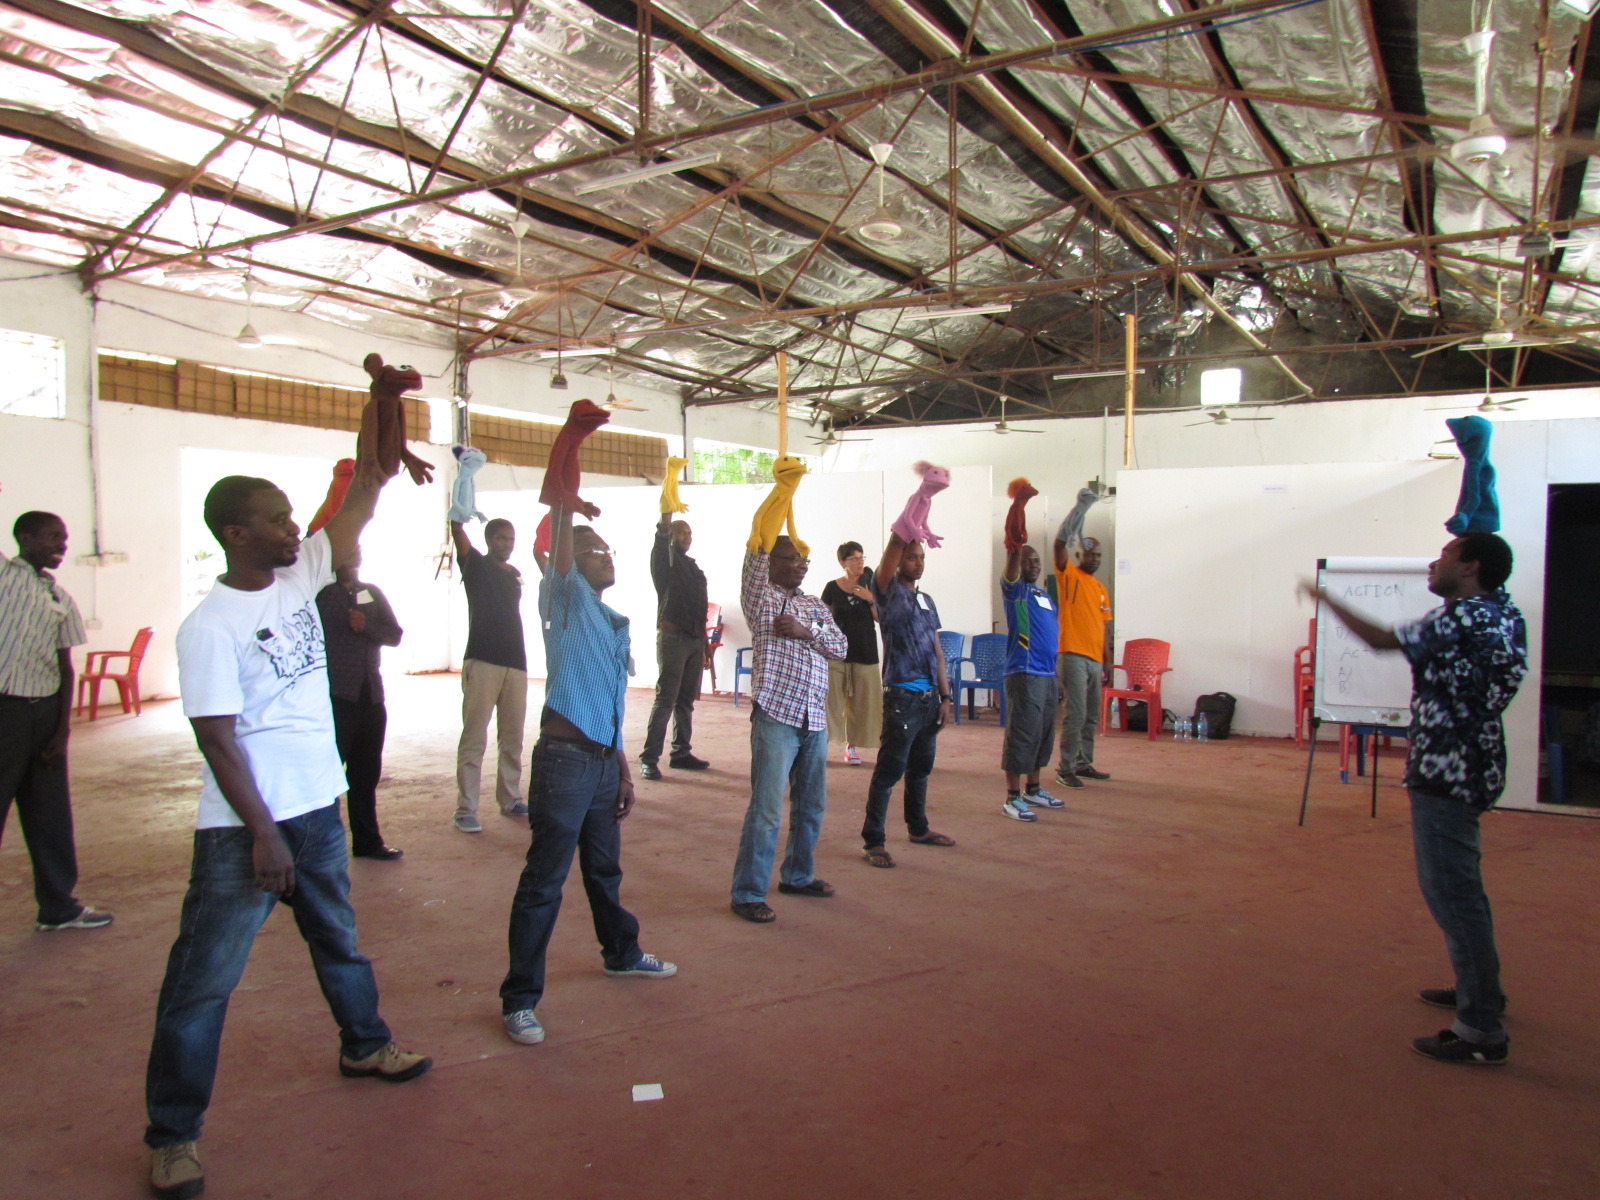 Puppetry Performance Training Workshop in East Africa - Peripheral Visions International Puppetry training in Dar es Salaam, Tanzania, Feb 2016